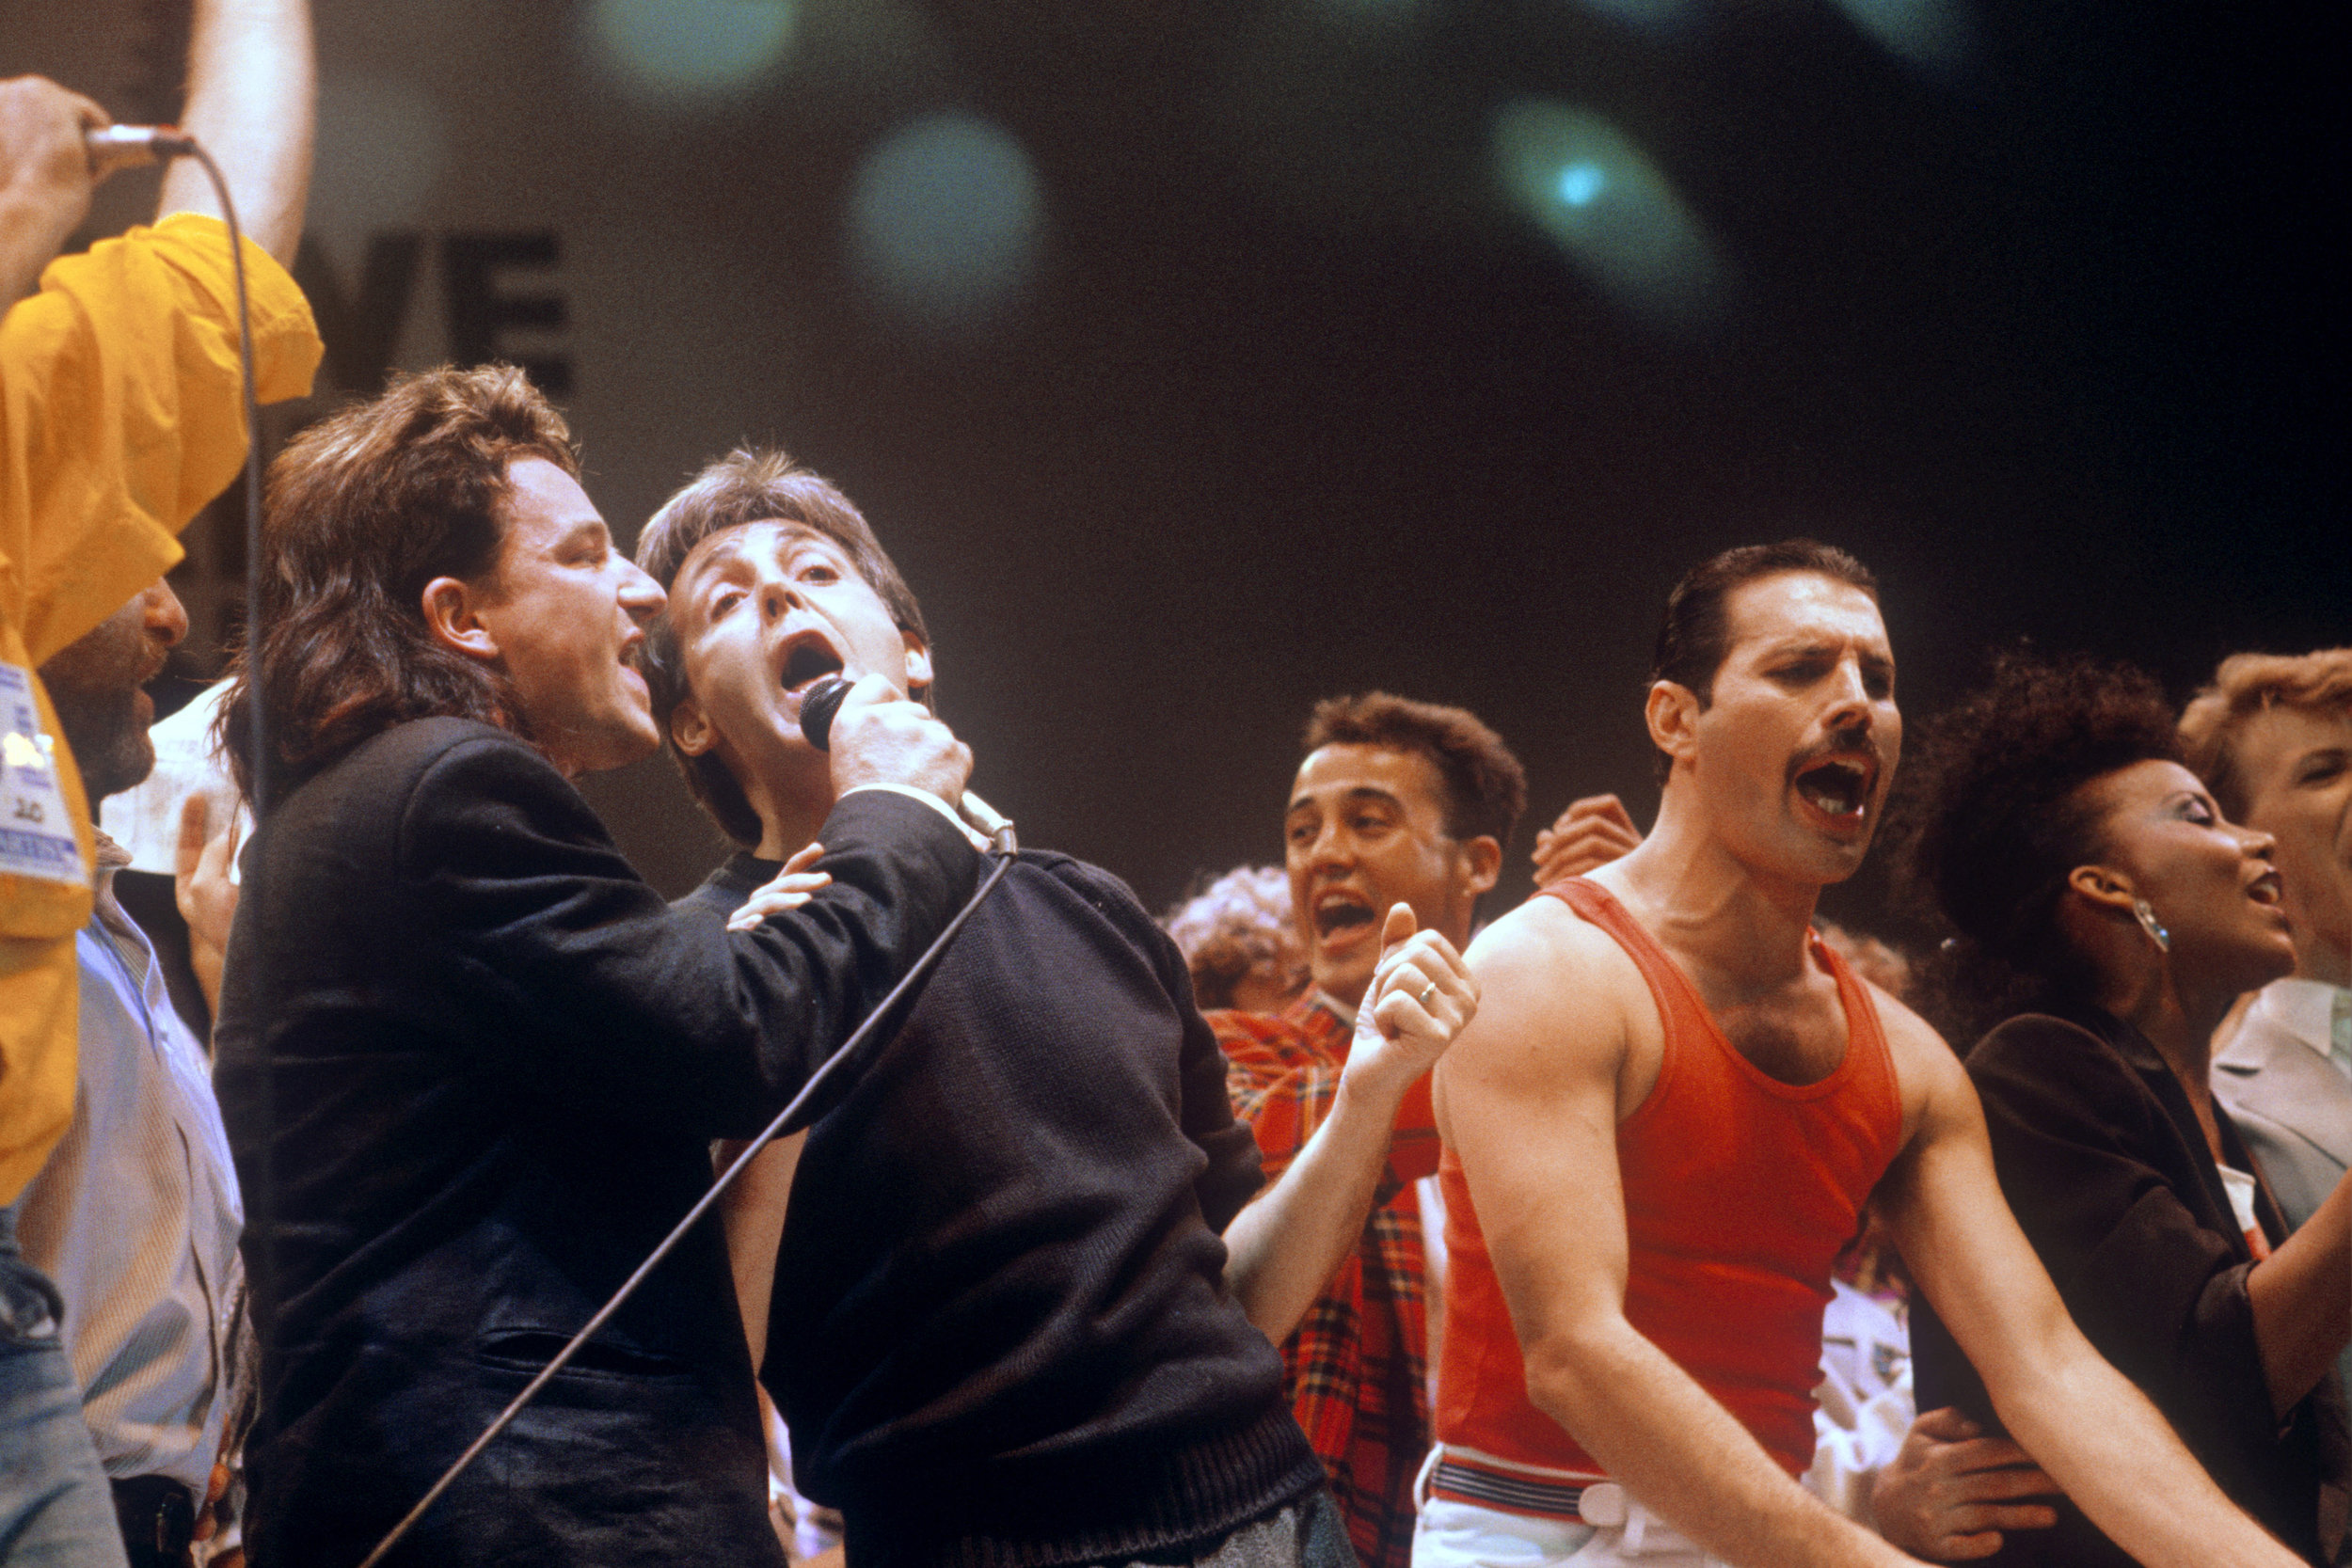 Bono, Paul McCartney, and Freddie Mercury performing at Live Aid concert, 1985.